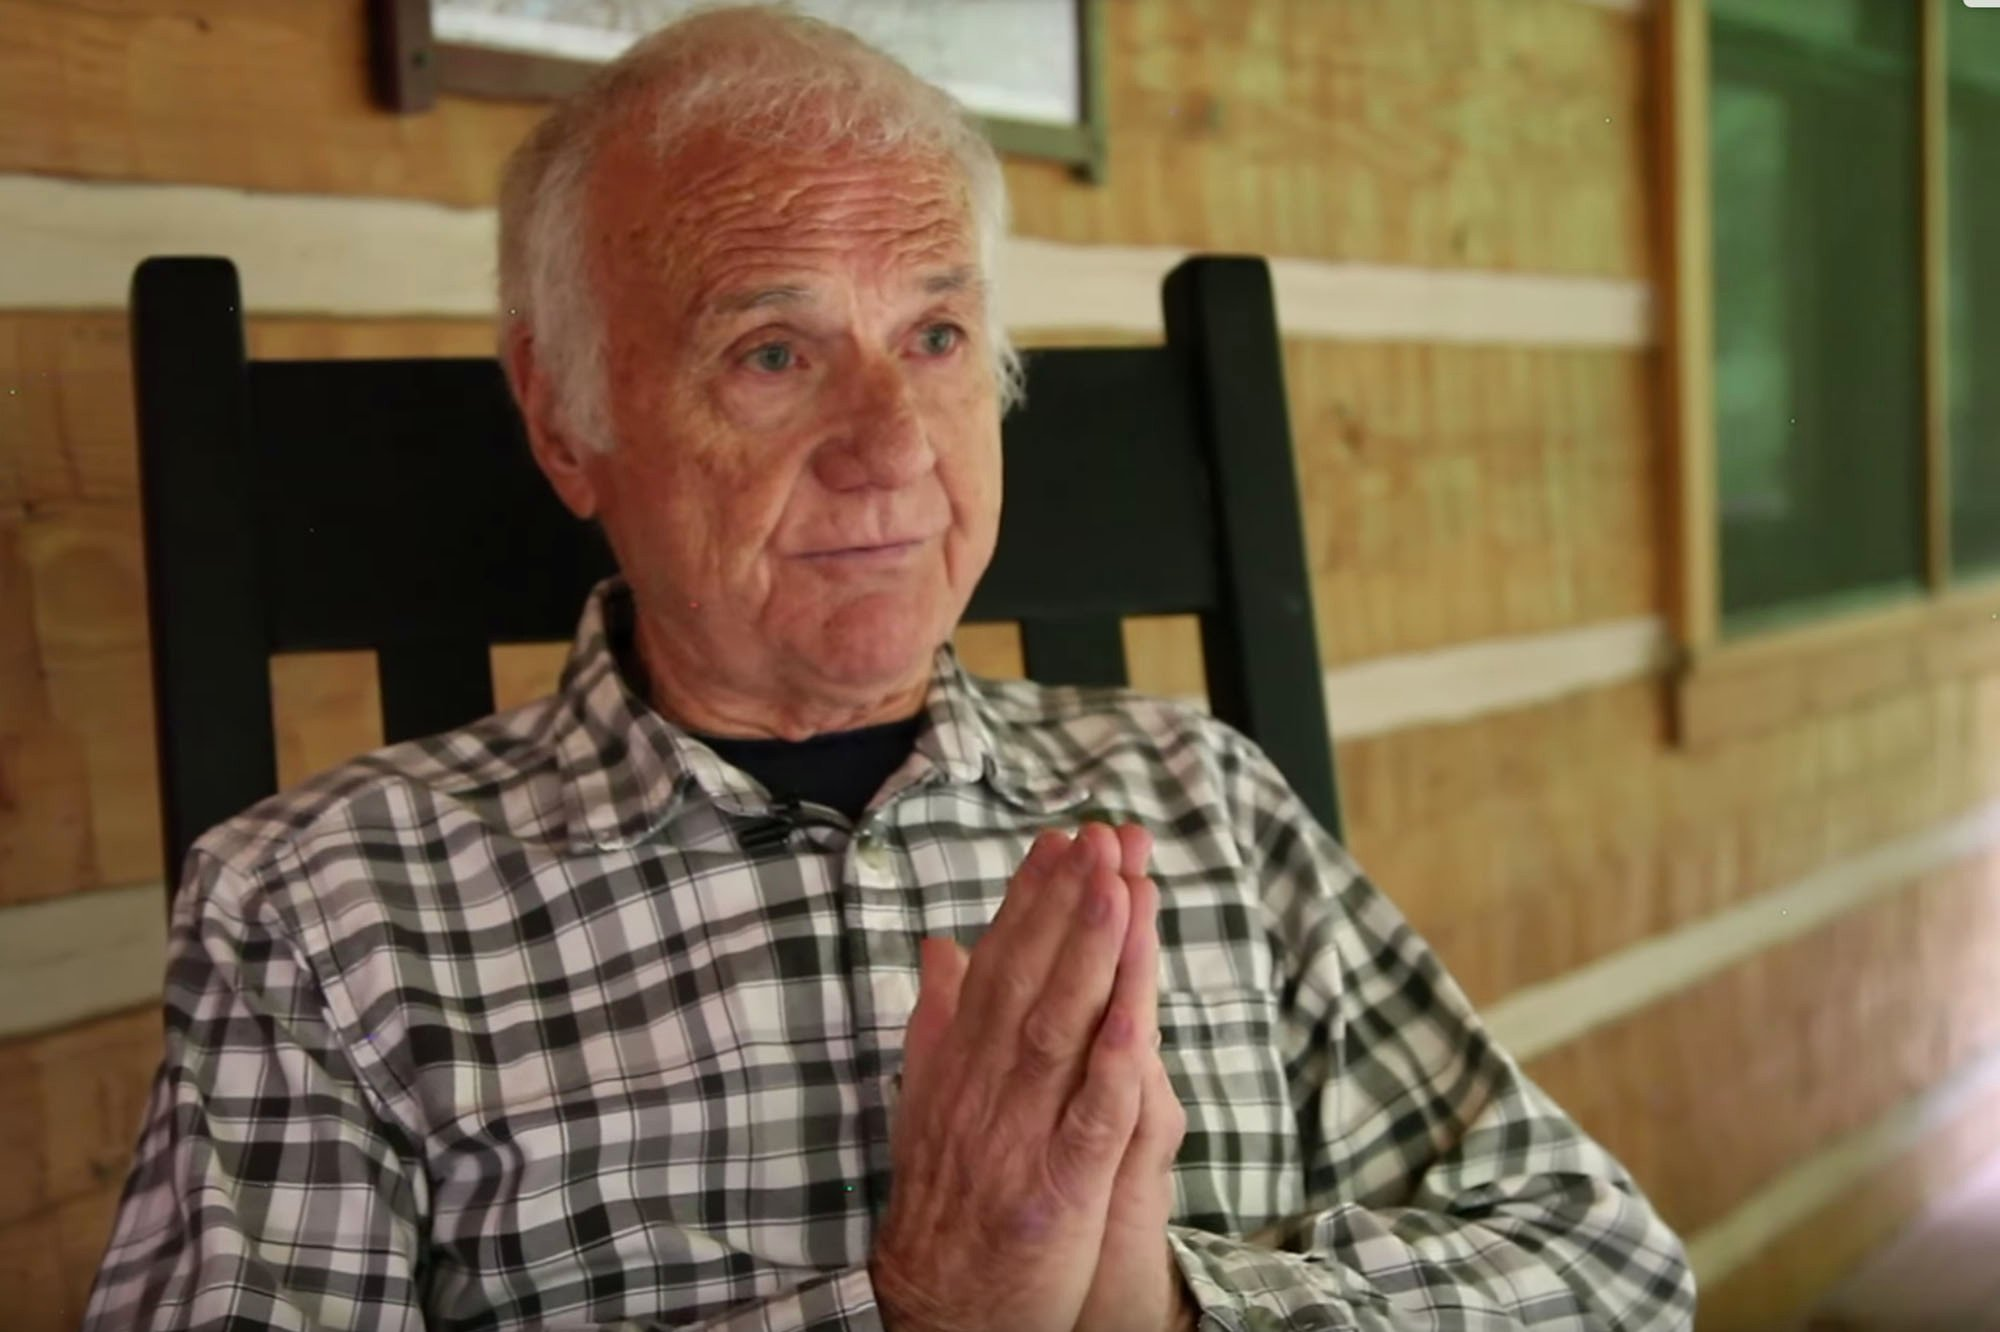 83-year-old makes his gay porn debut: 'It was splendid!'